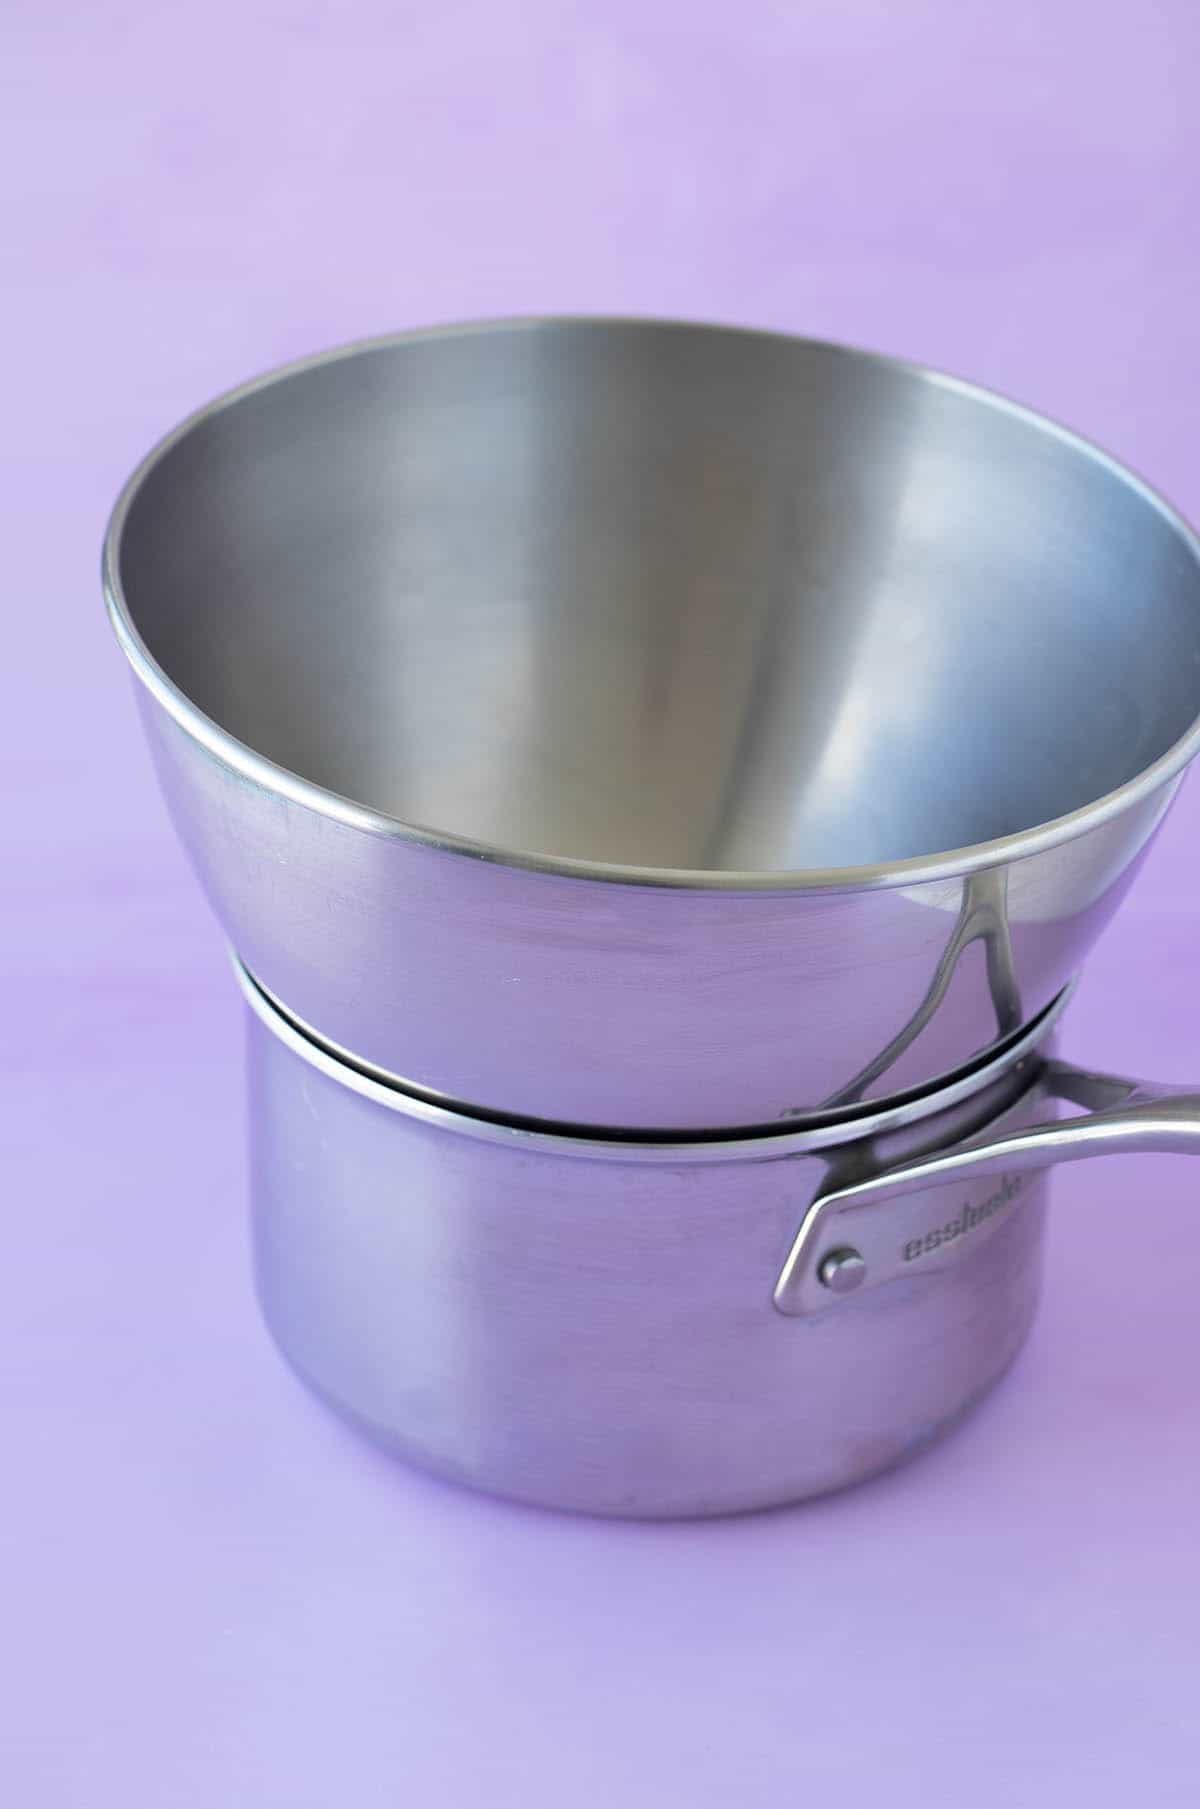 A saucepan with a bowl on top showing how to make a double boiler